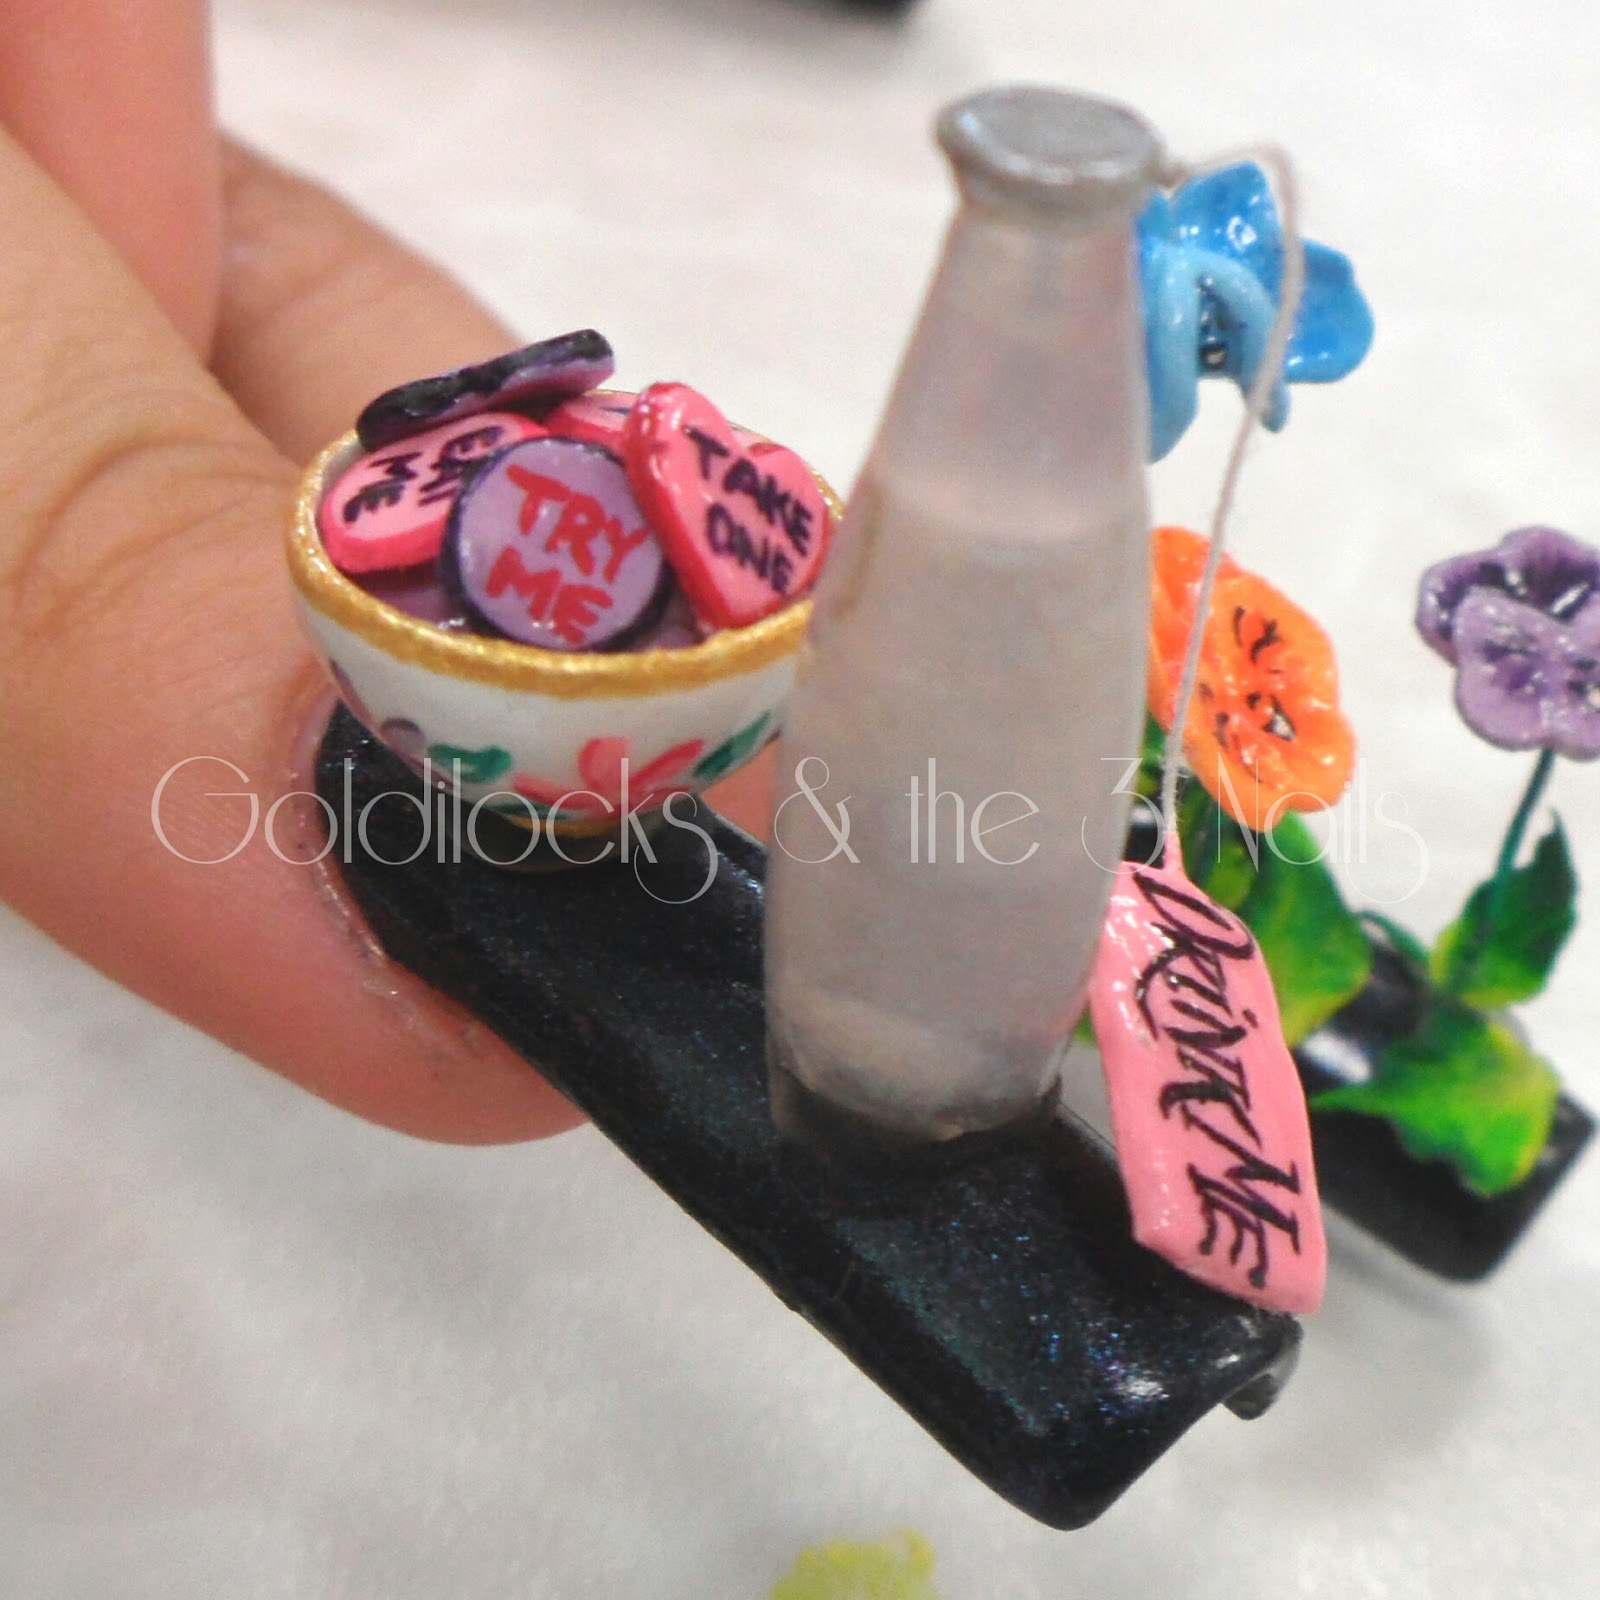 Goldilocks the three nails alice in wonderland 3d nail art and some close ups prinsesfo Images